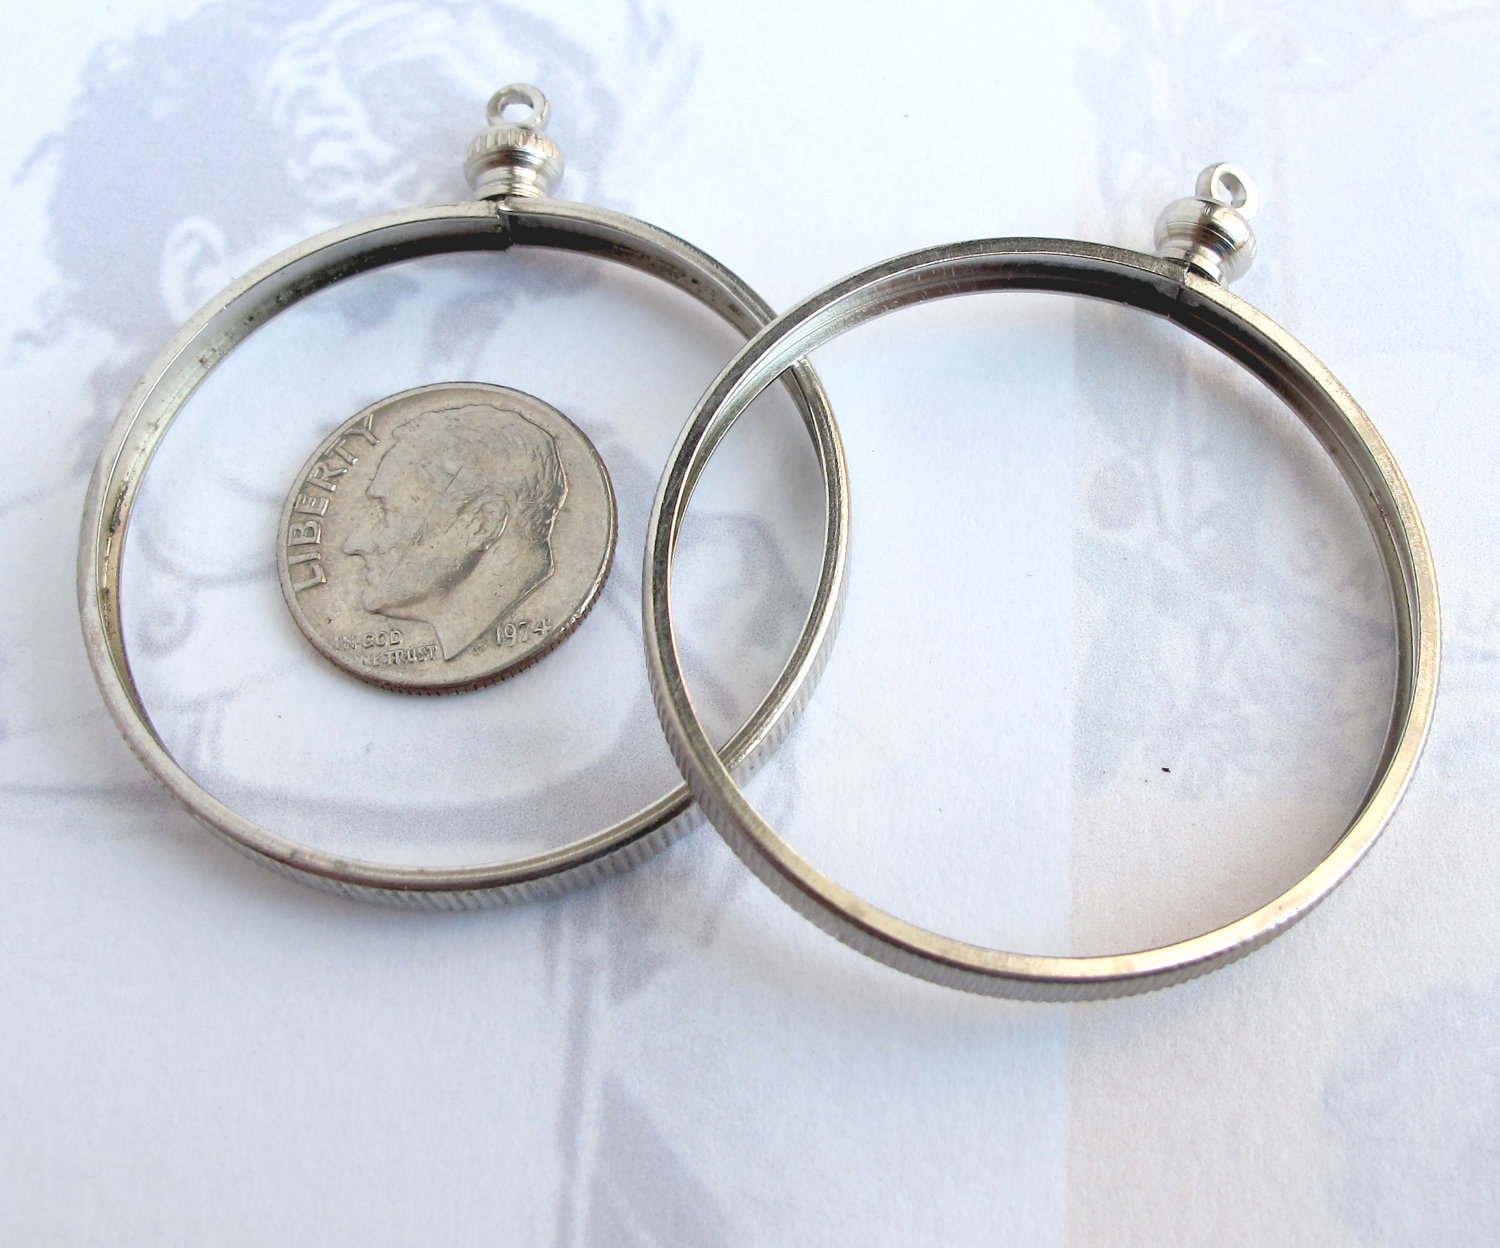 Huge vintage rhodium plated on brass coin holder pendants 4x v343 huge vintage rhodium plated on brass coin holder pendants 4x v343 aloadofball Images